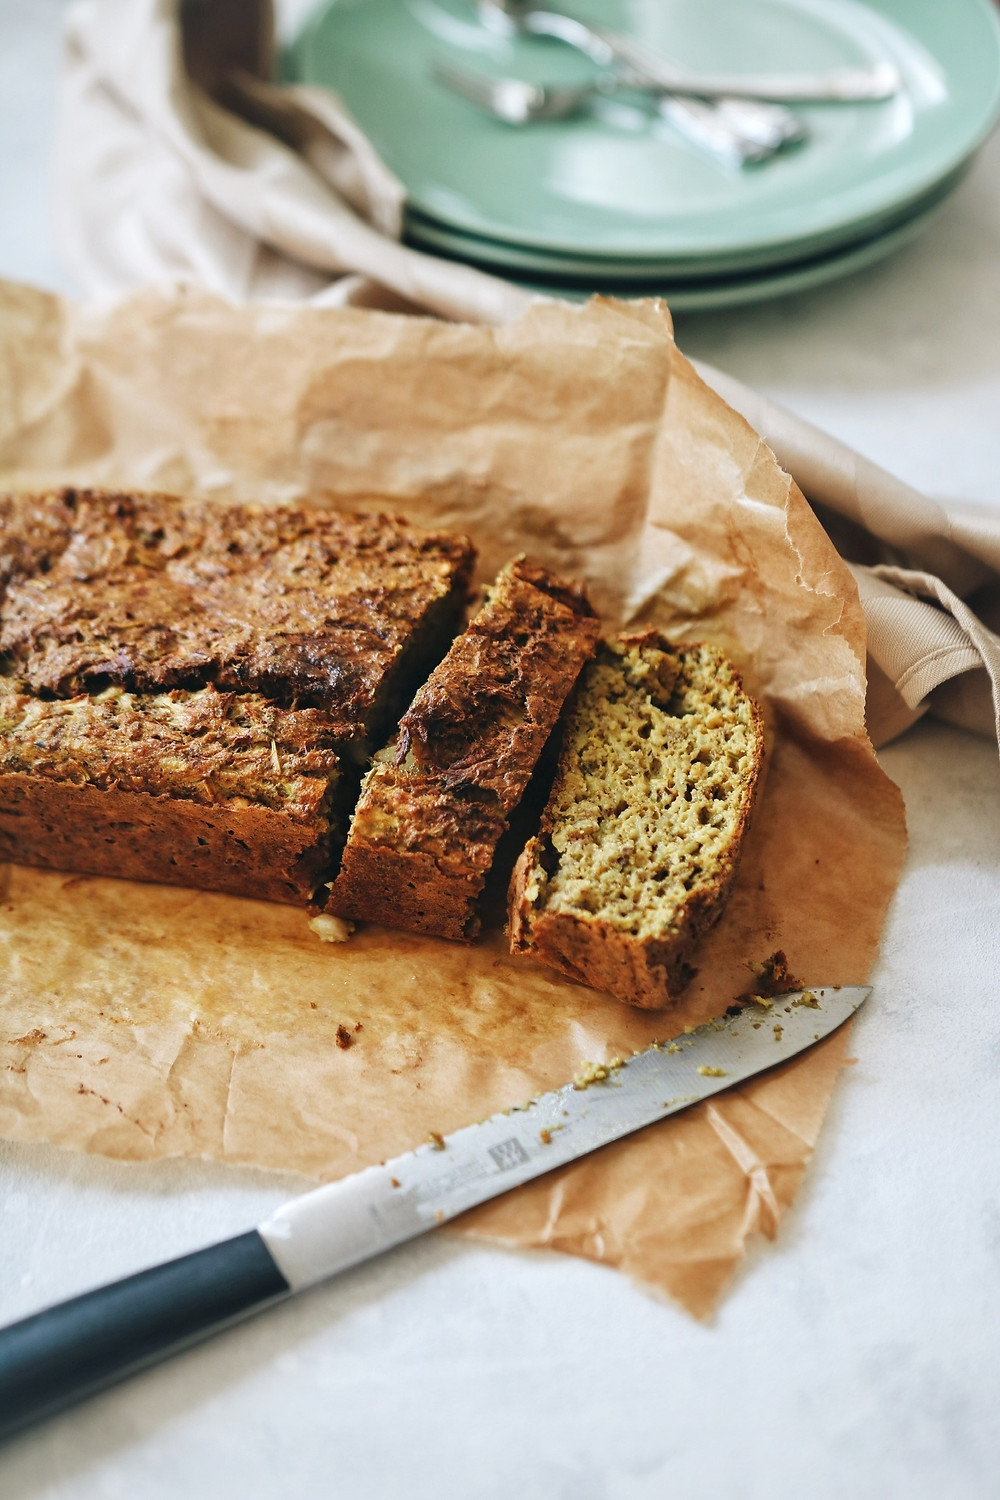 A gluten free golden zucchini bread sliced and filled with warming spices, a knife in the foreground and plates in the background.